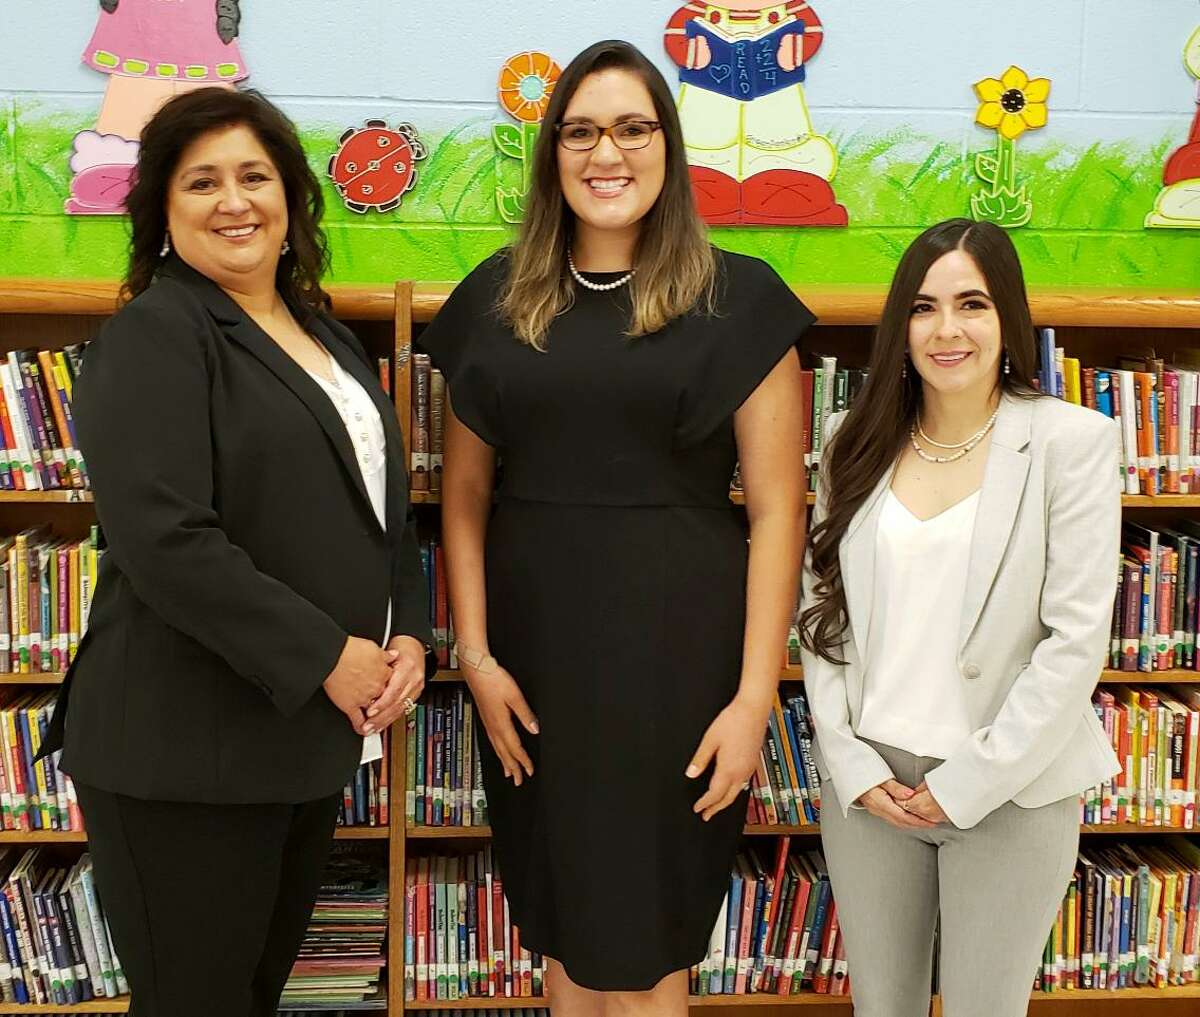 LISD announced this week the appointment of Dolores Flores as Ryan Elementary School Principal, Ana Mastee as Tarver Elementary School Principal and Michelle Gonzalez as Santo Nino Elementary School principal.